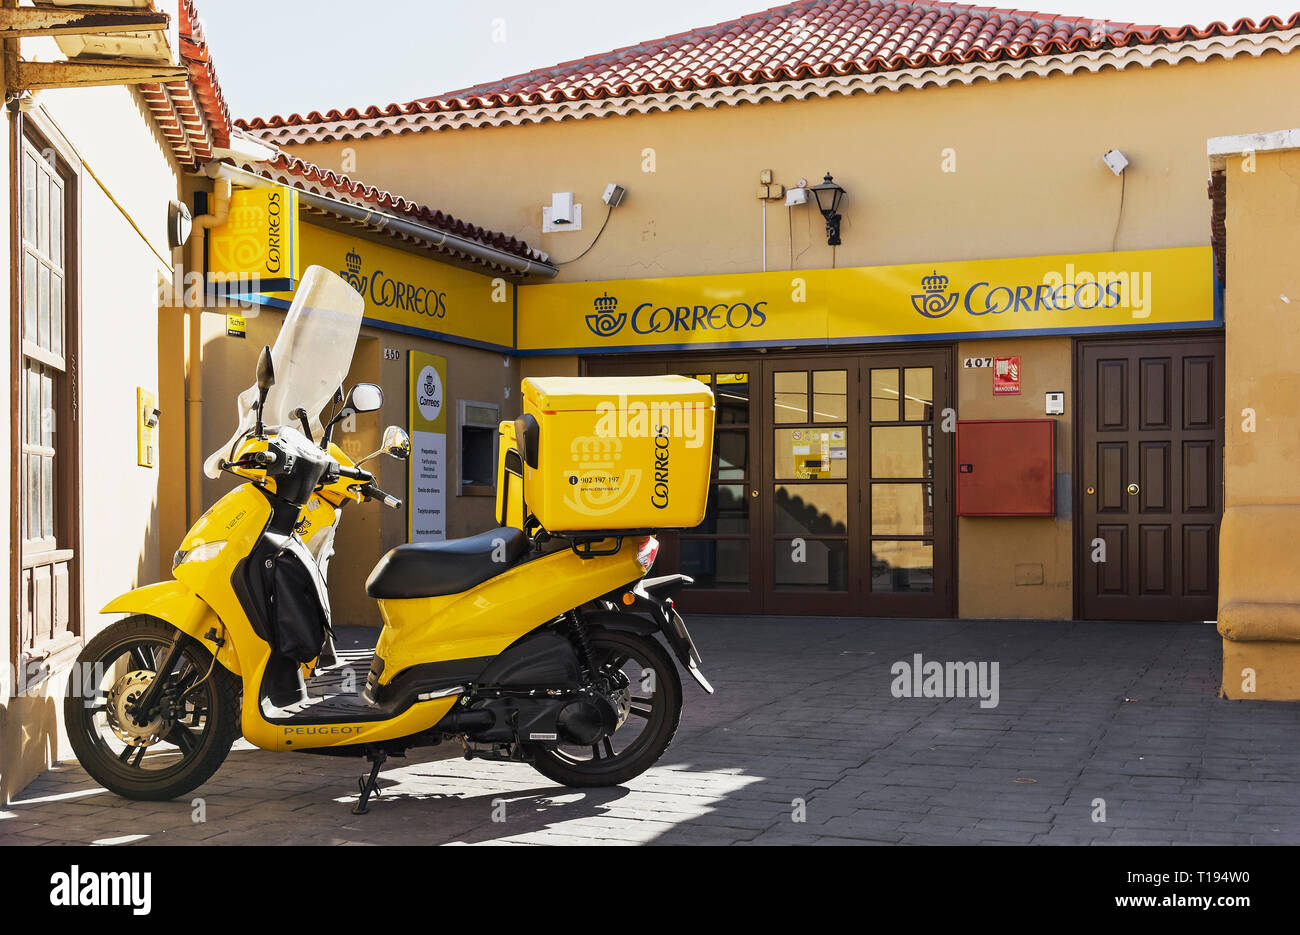 Post office and delivery scooter in yellow logo of the